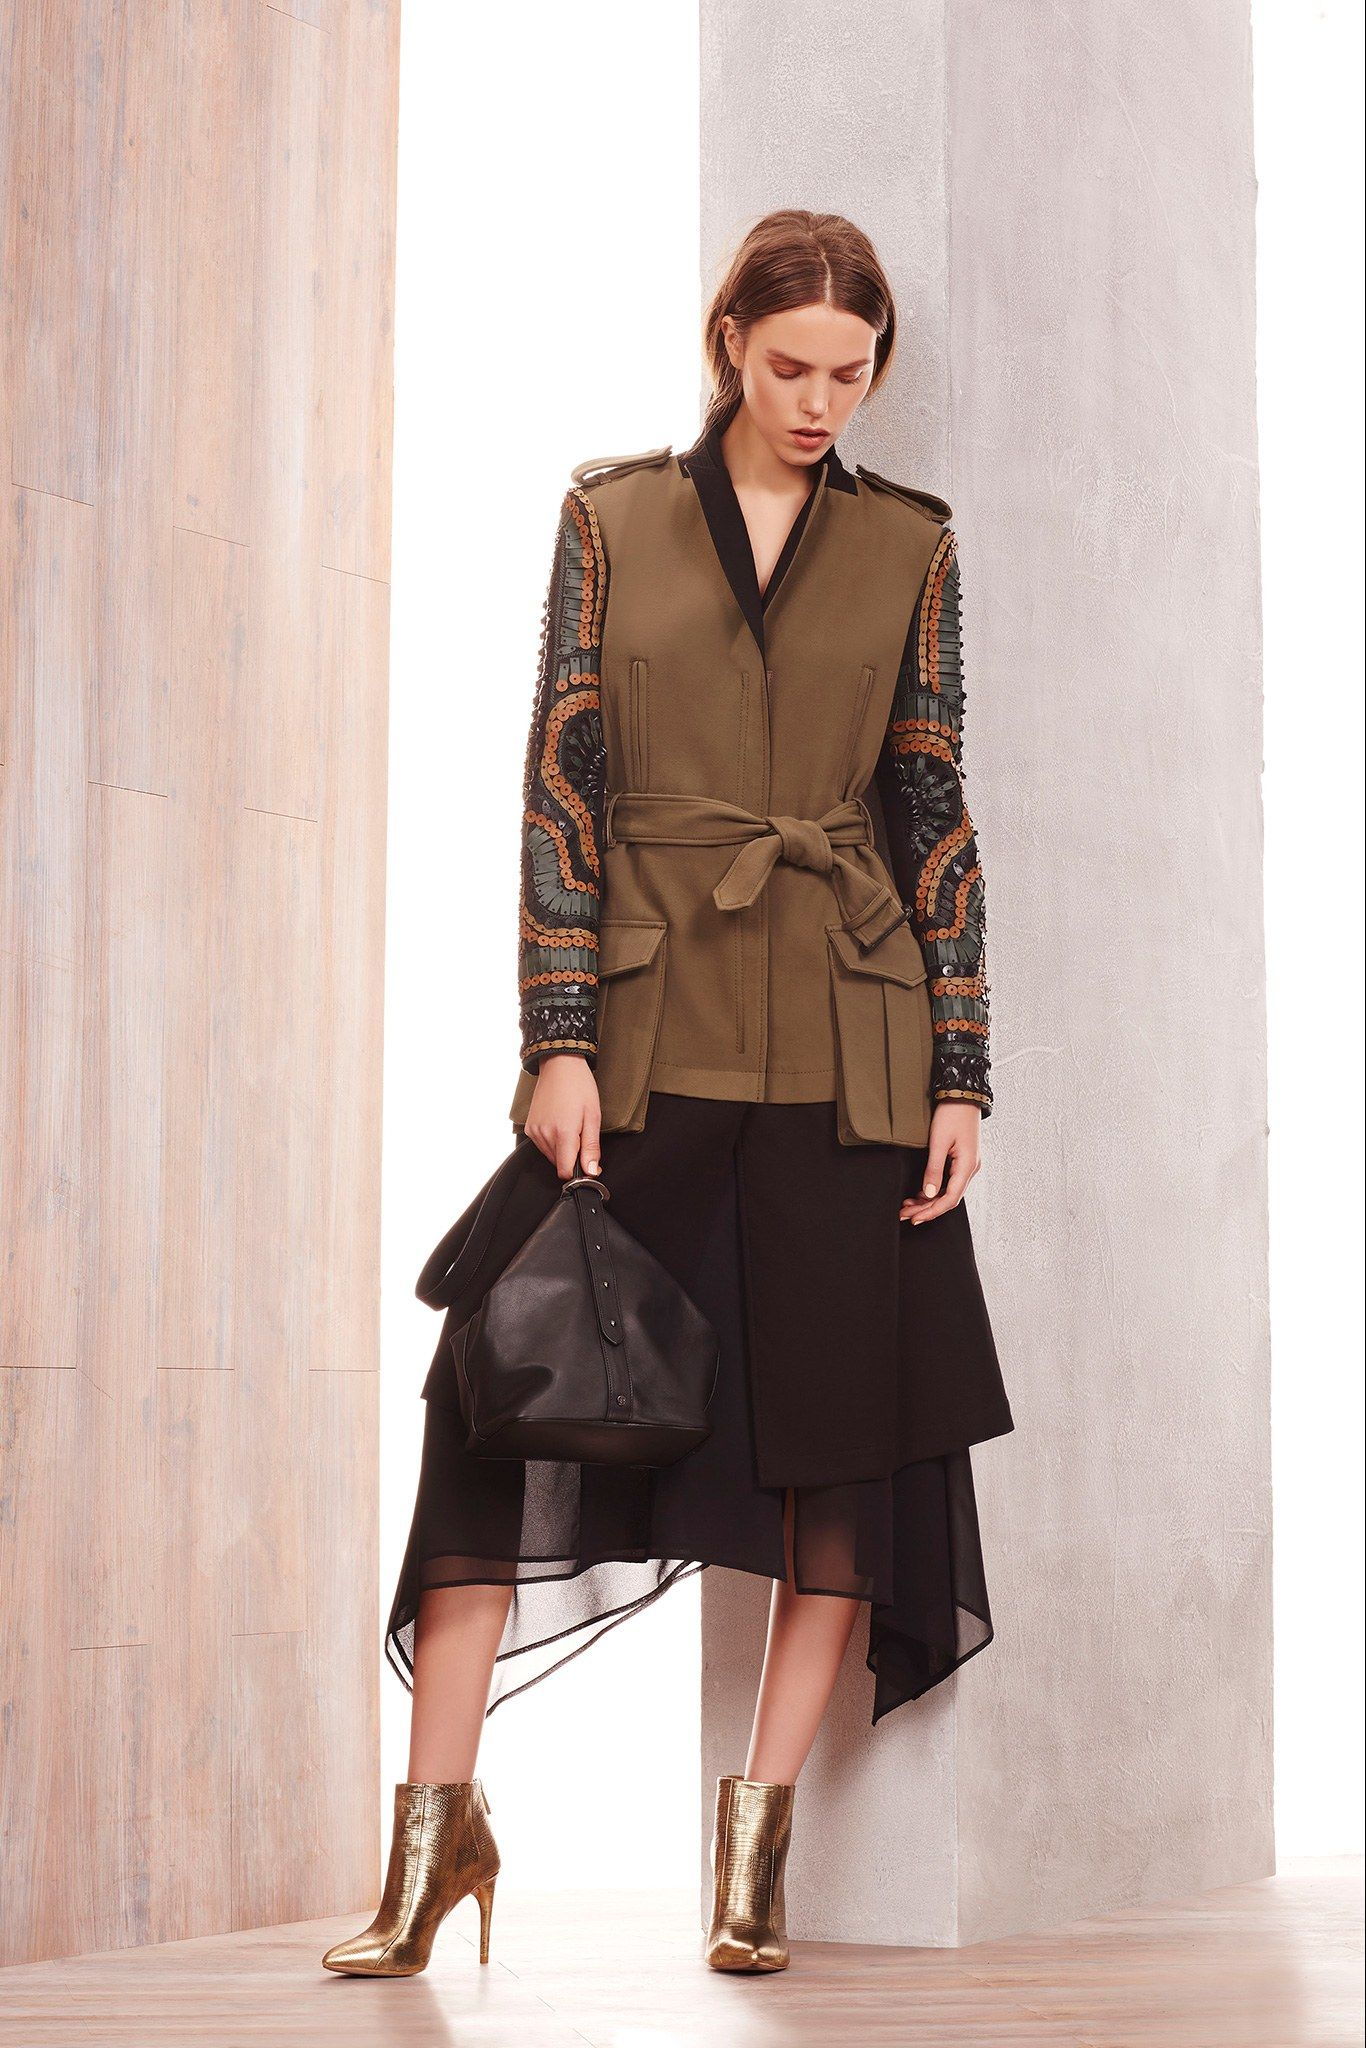 Discussion on this topic: See Every Look from the BCBGMAXAZRIA Fall , see-every-look-from-the-bcbgmaxazria-fall/